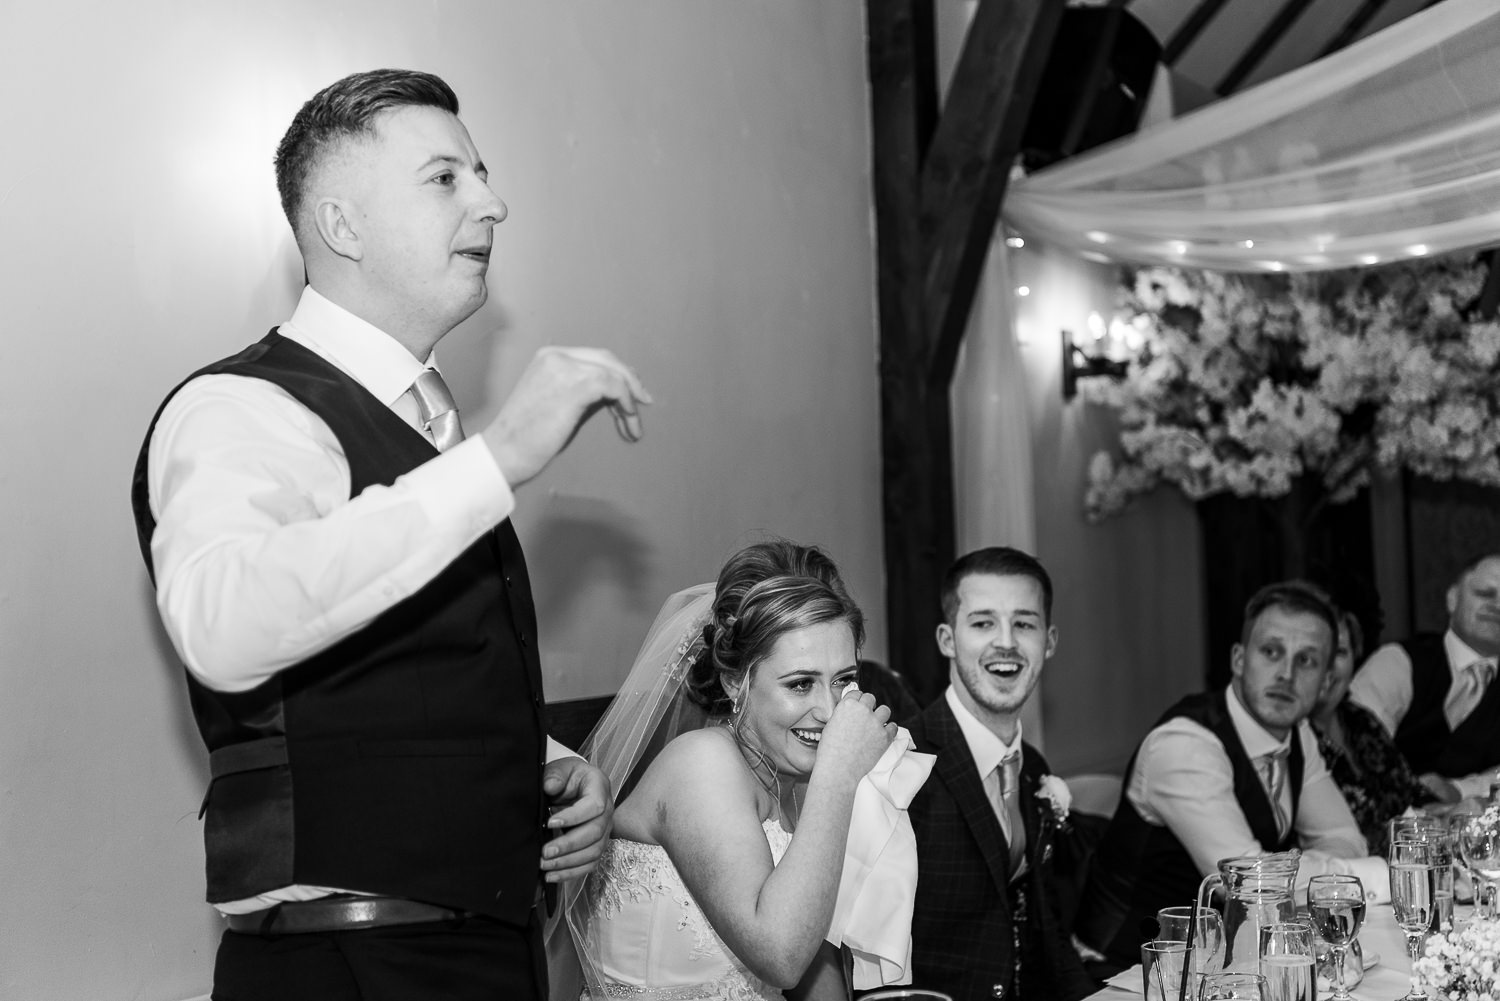 Speech by the brother of the bride